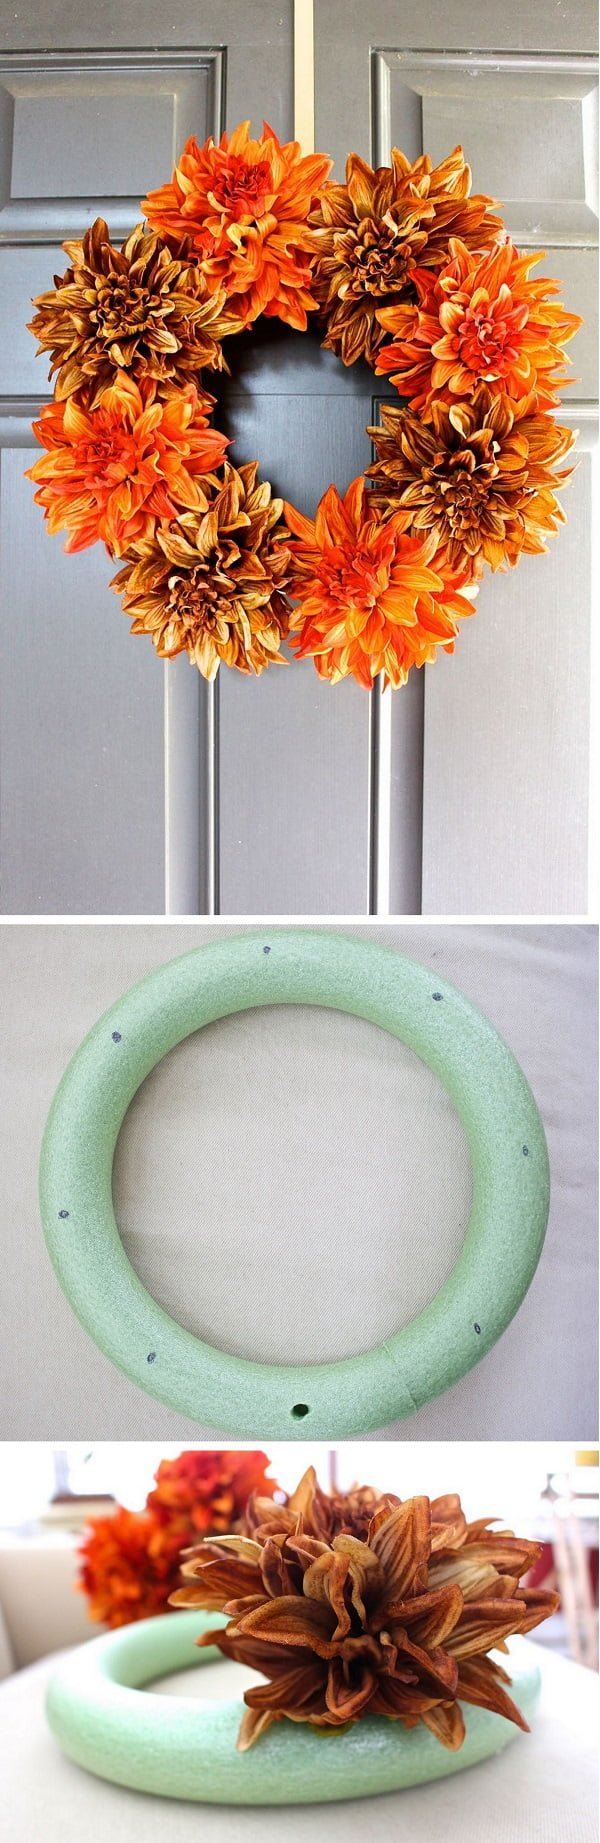 Check out the tutorial how to make a DIY fall wreath